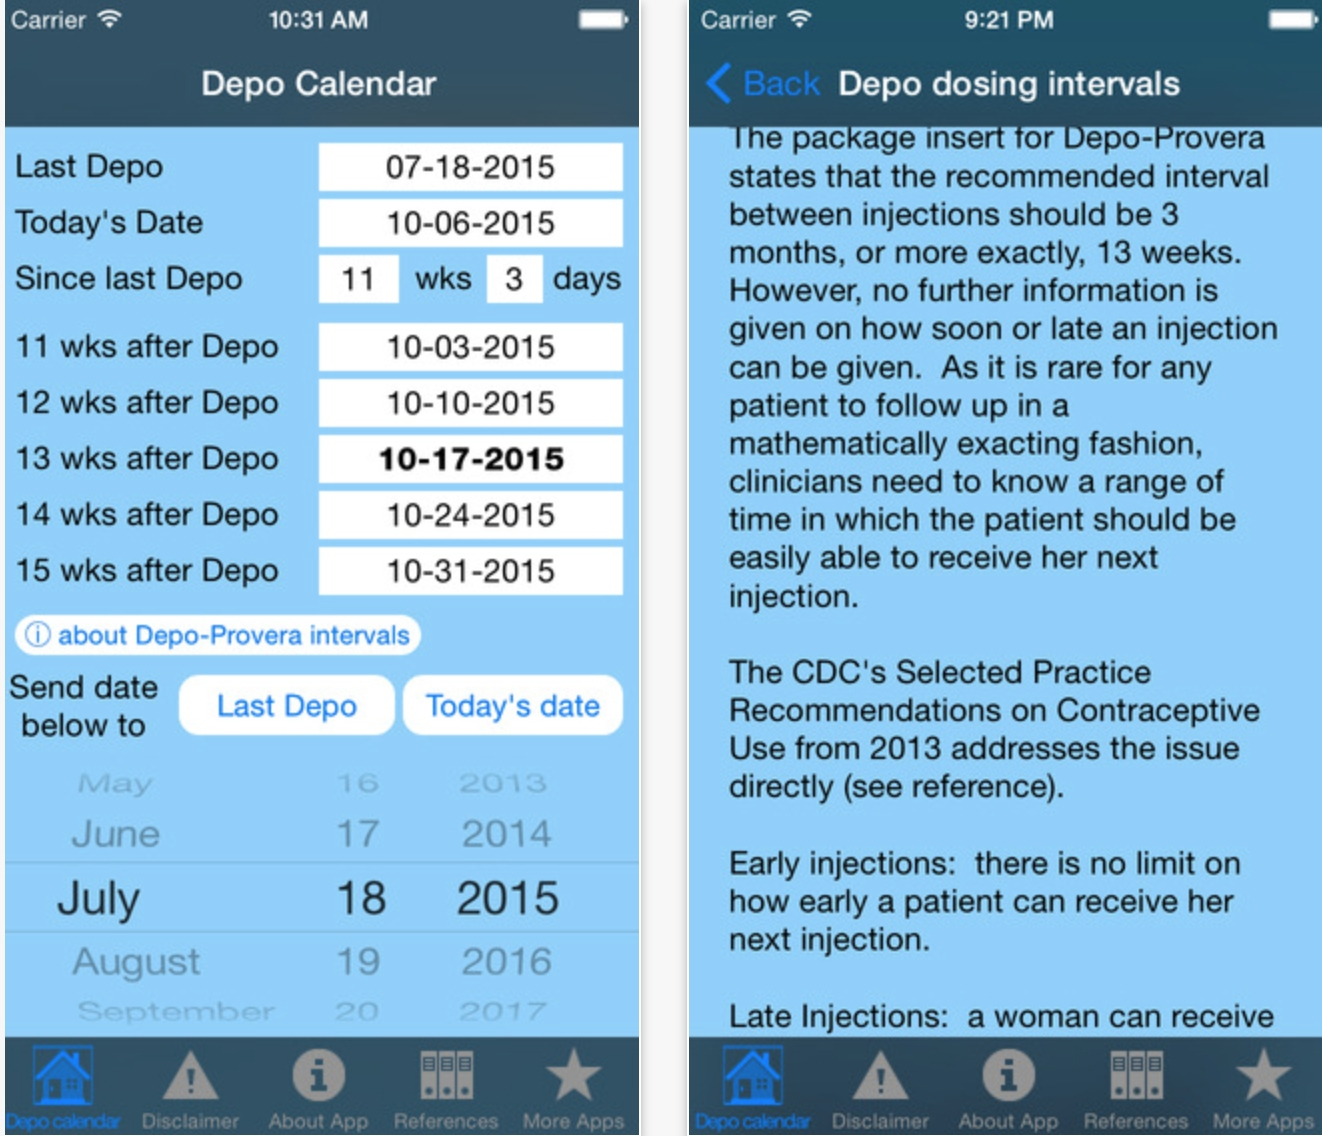 Catch Figuring Out Exact Date For Depo Provera Injection  Depo Provera Admin Calendar